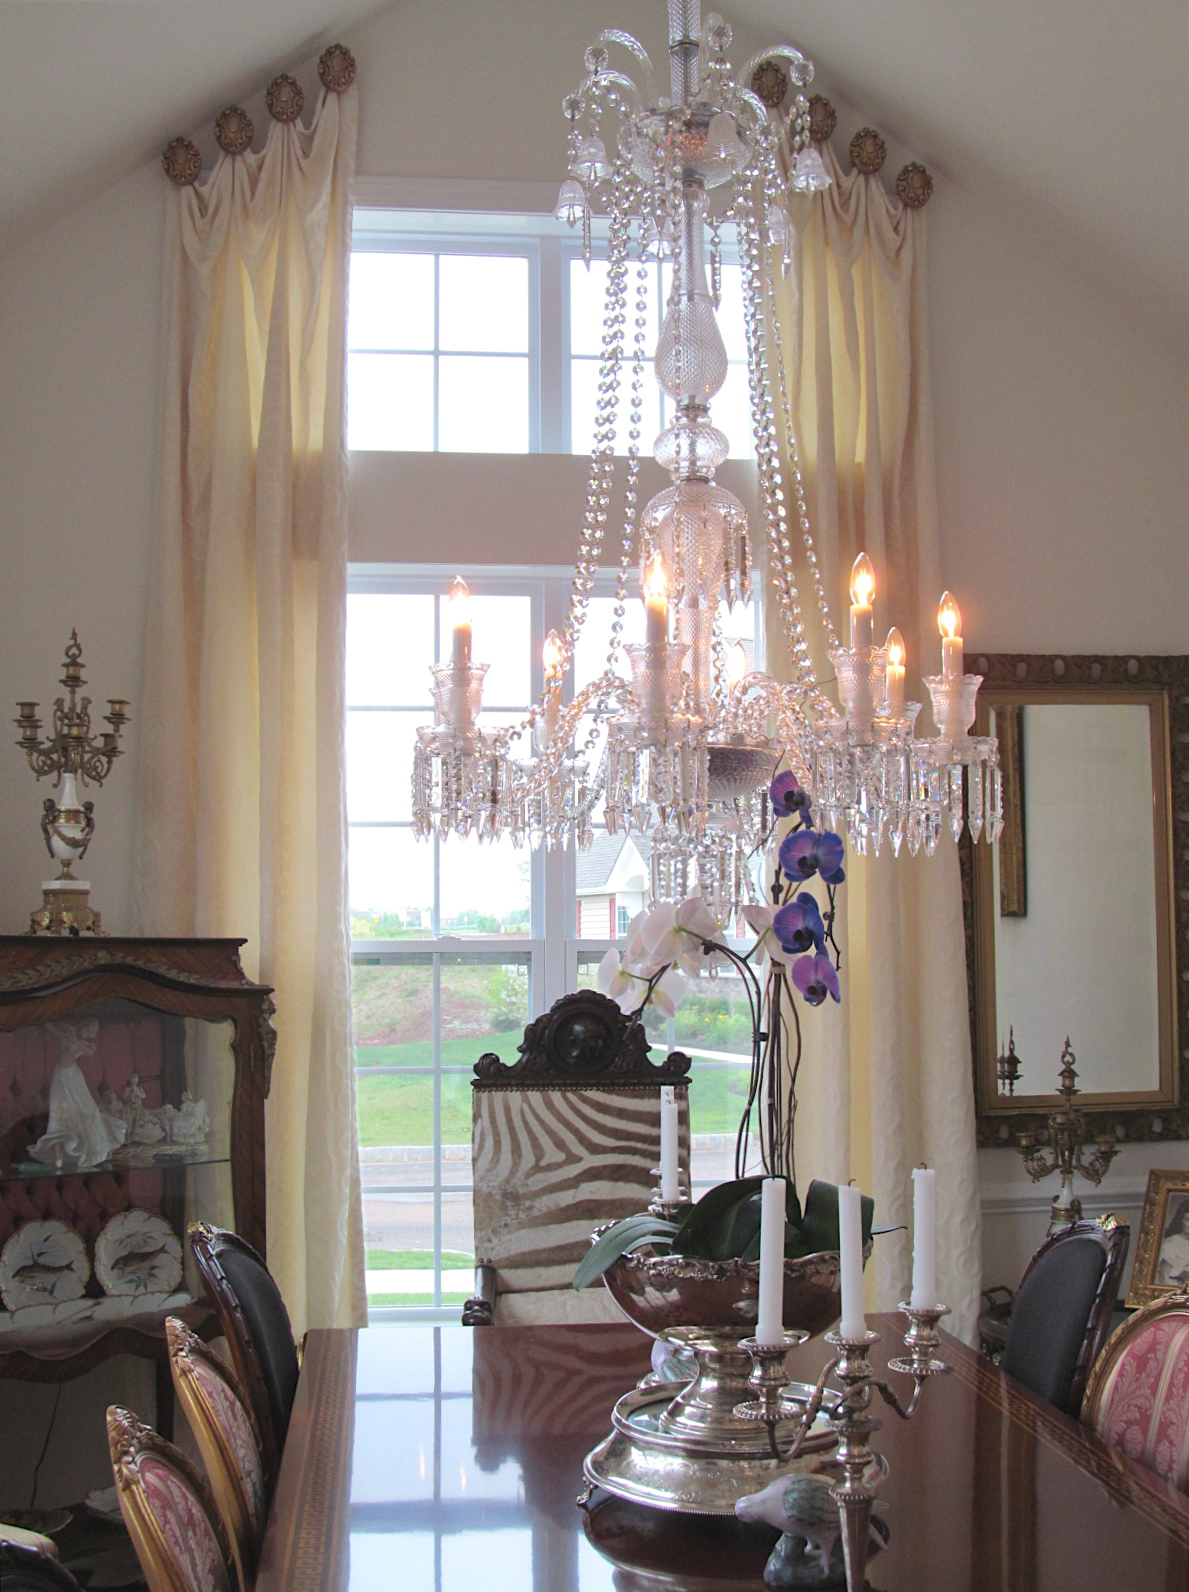 An example of our expert installation of custom drapery from dePasquale Design